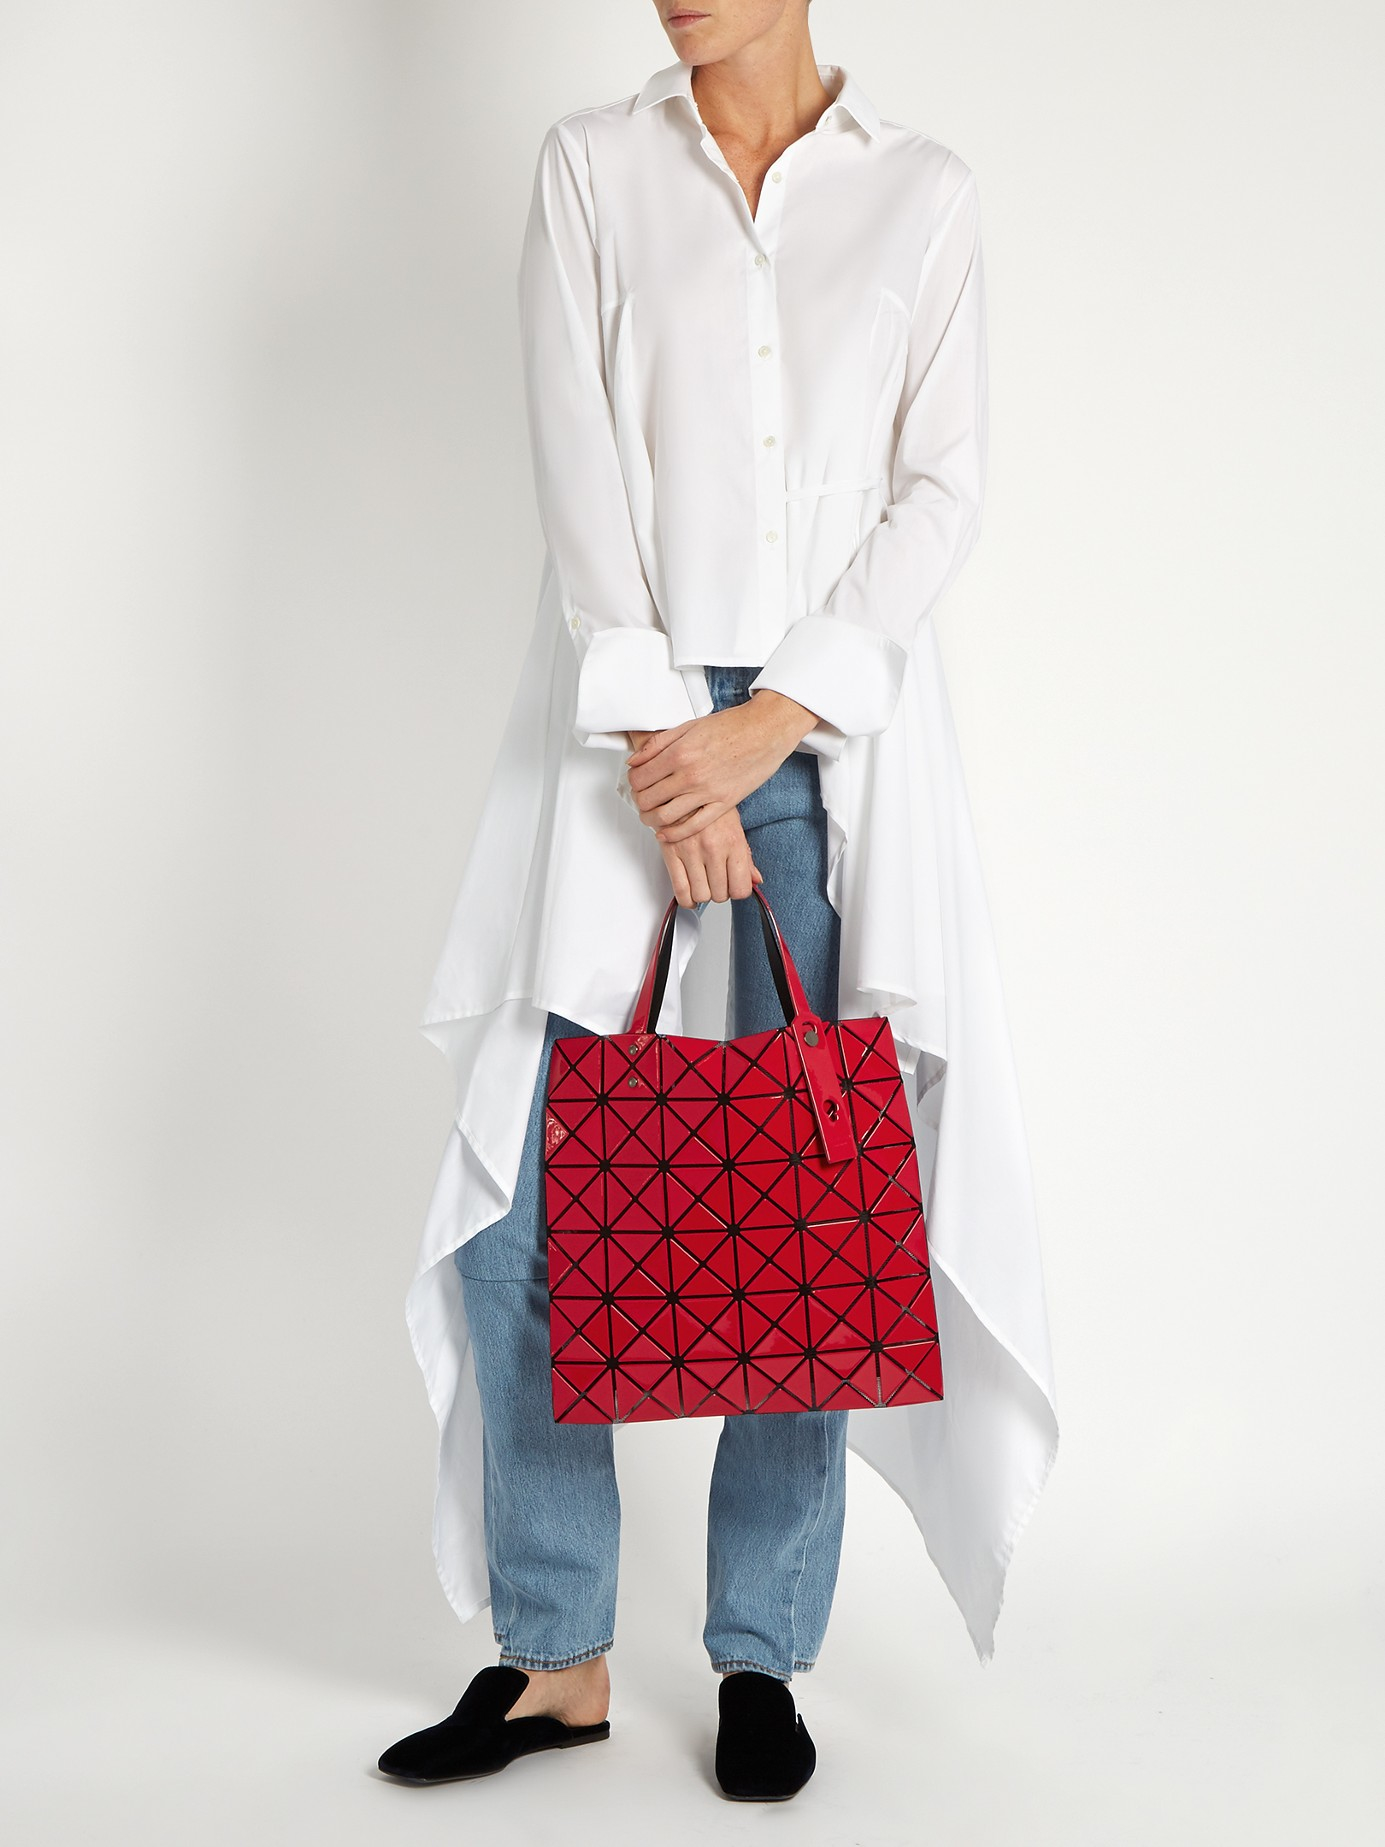 Bao Bao Issey Miyake Lucent Gloss Tote in Red